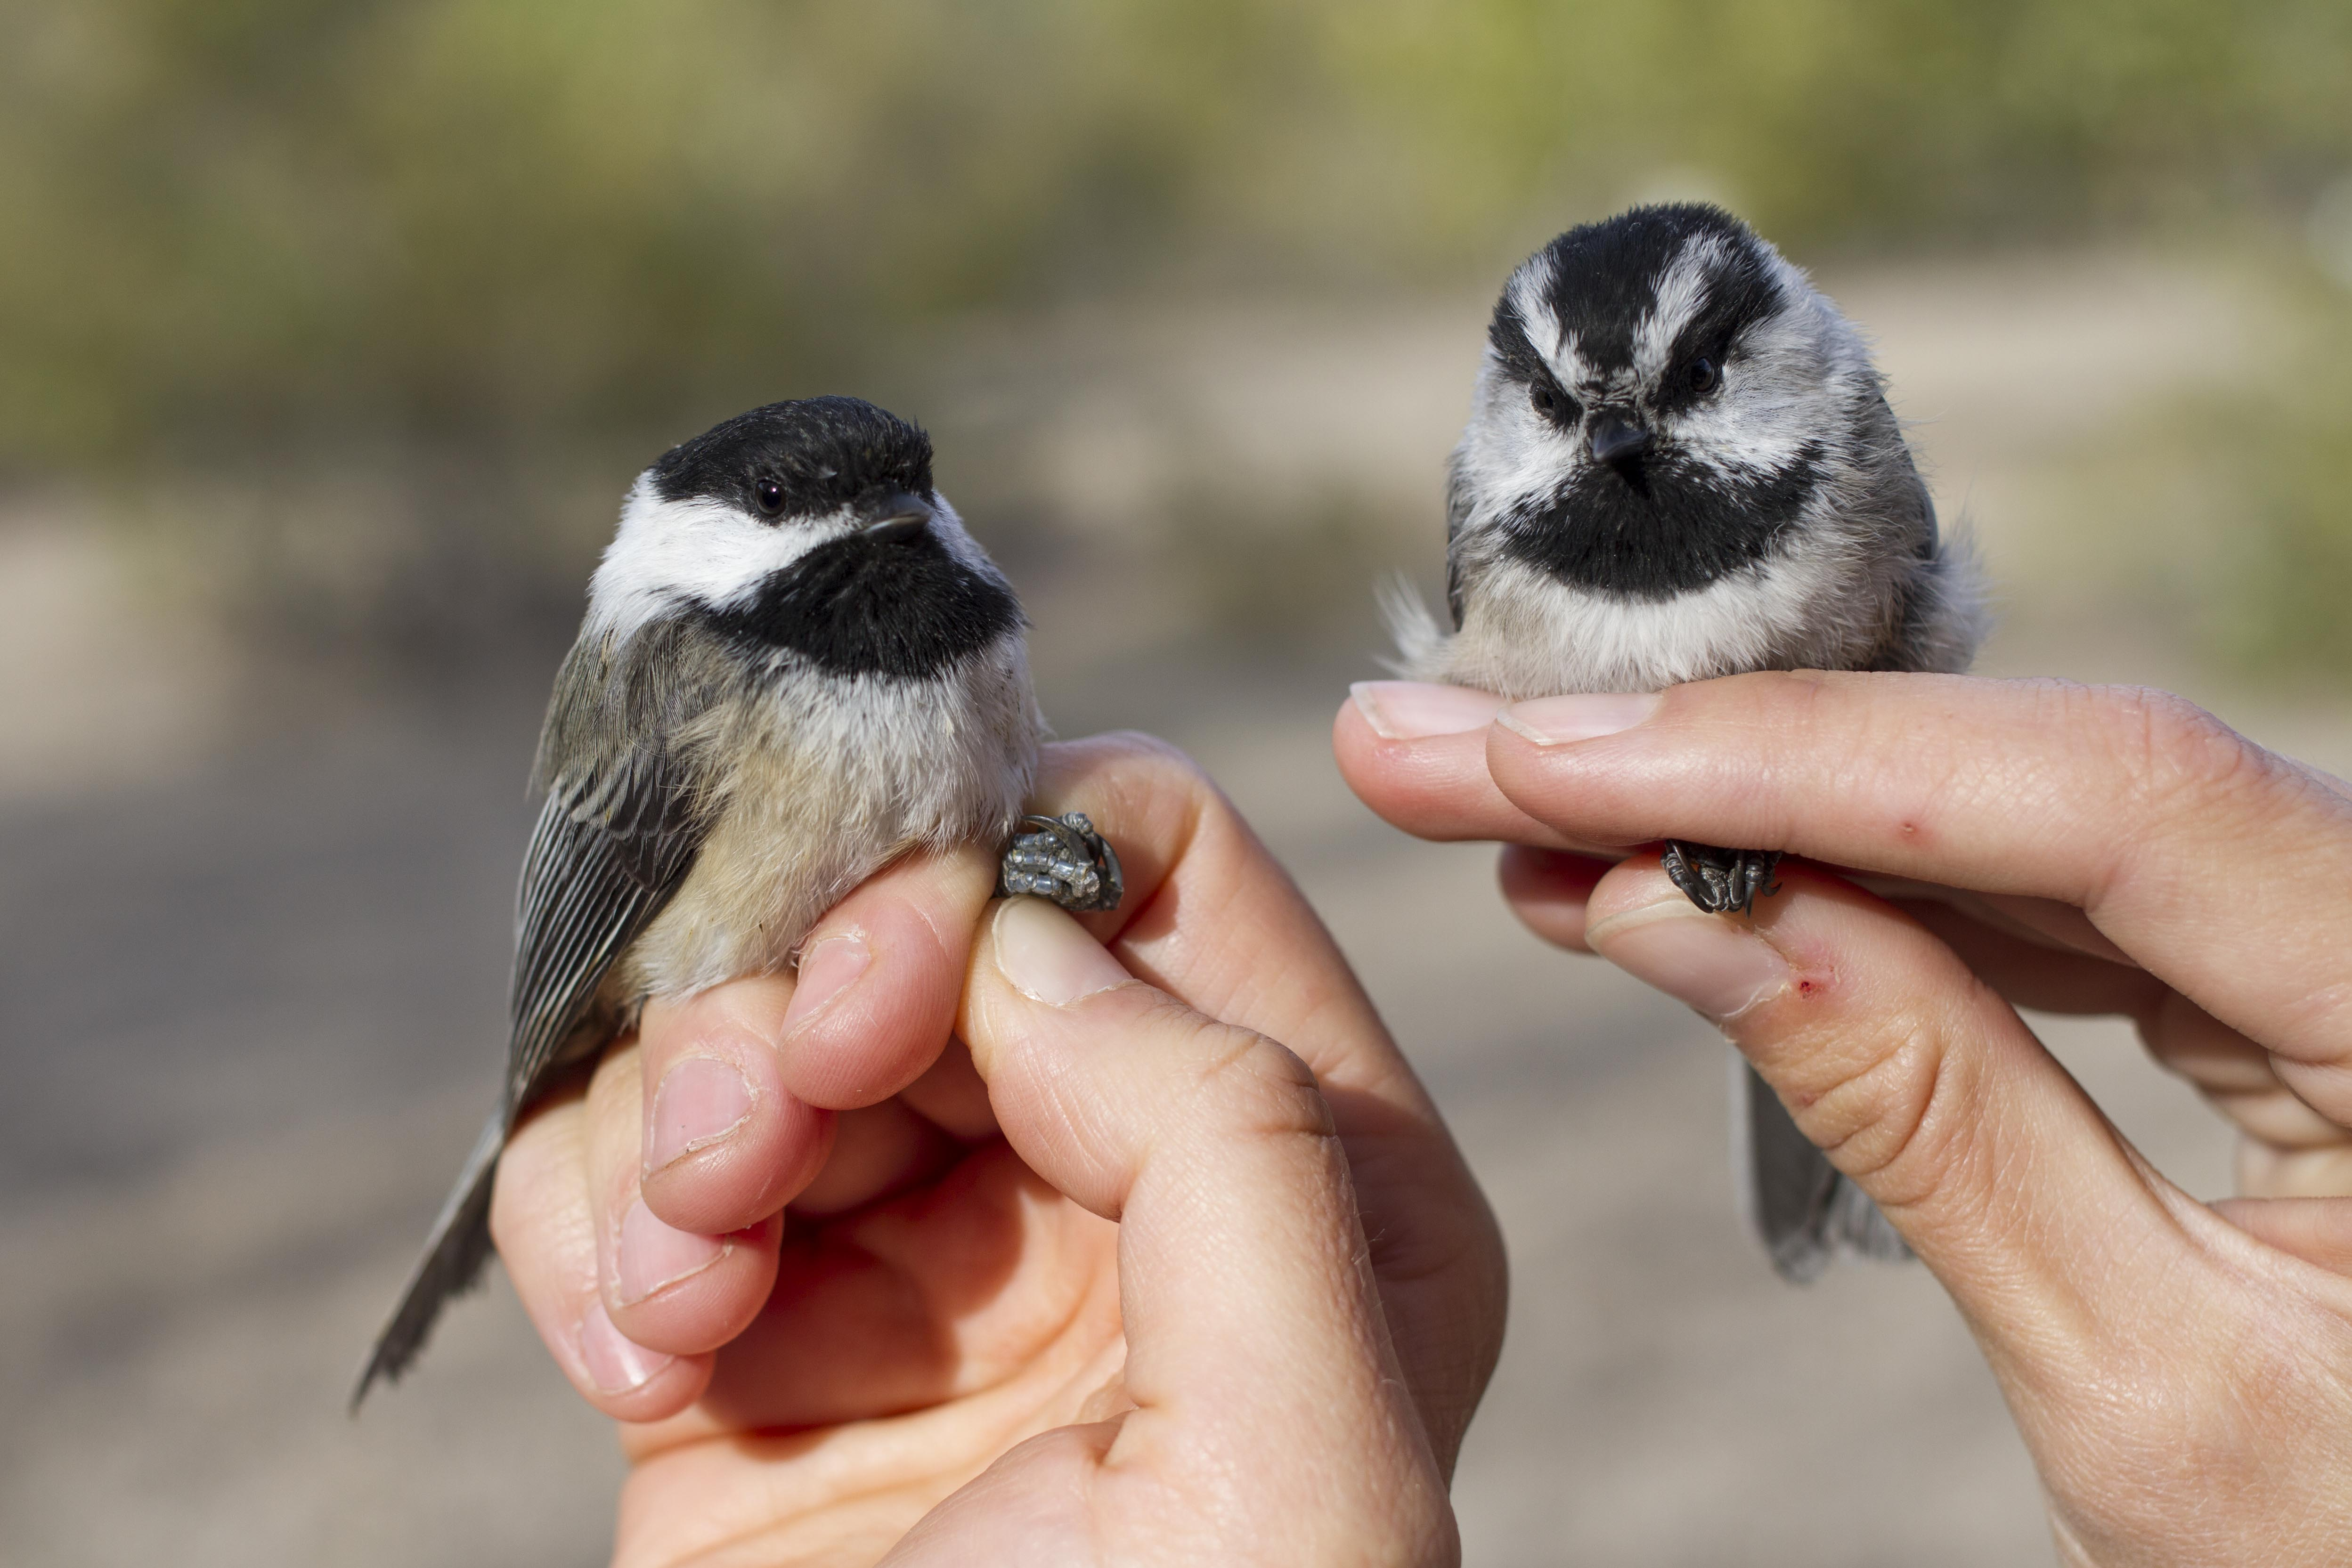 a Mountain Chickadee and Black-capped Chickadee held by scientists